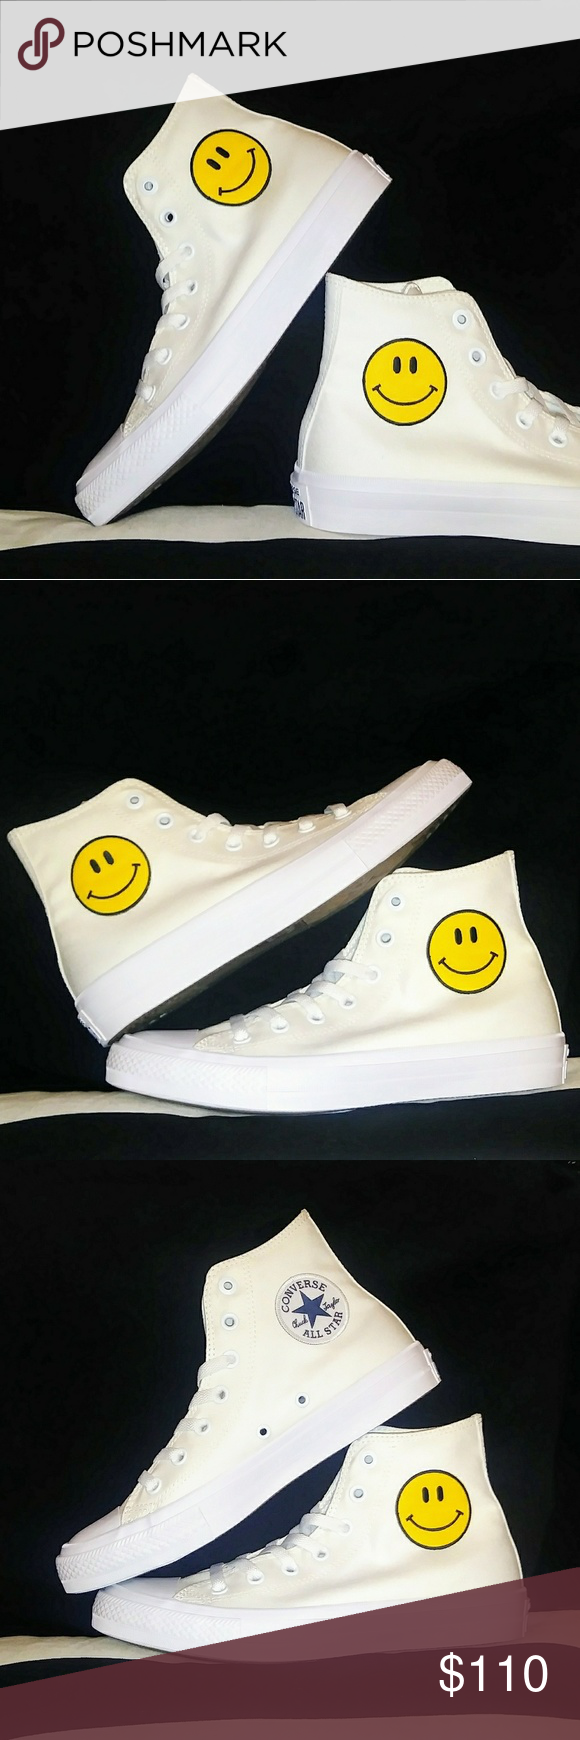 e3c3935cebd0 NWT Custom Smiley Face Converse Chuck Taylor Shoes - Custom Smiley Face  Emoji Sneakers - New